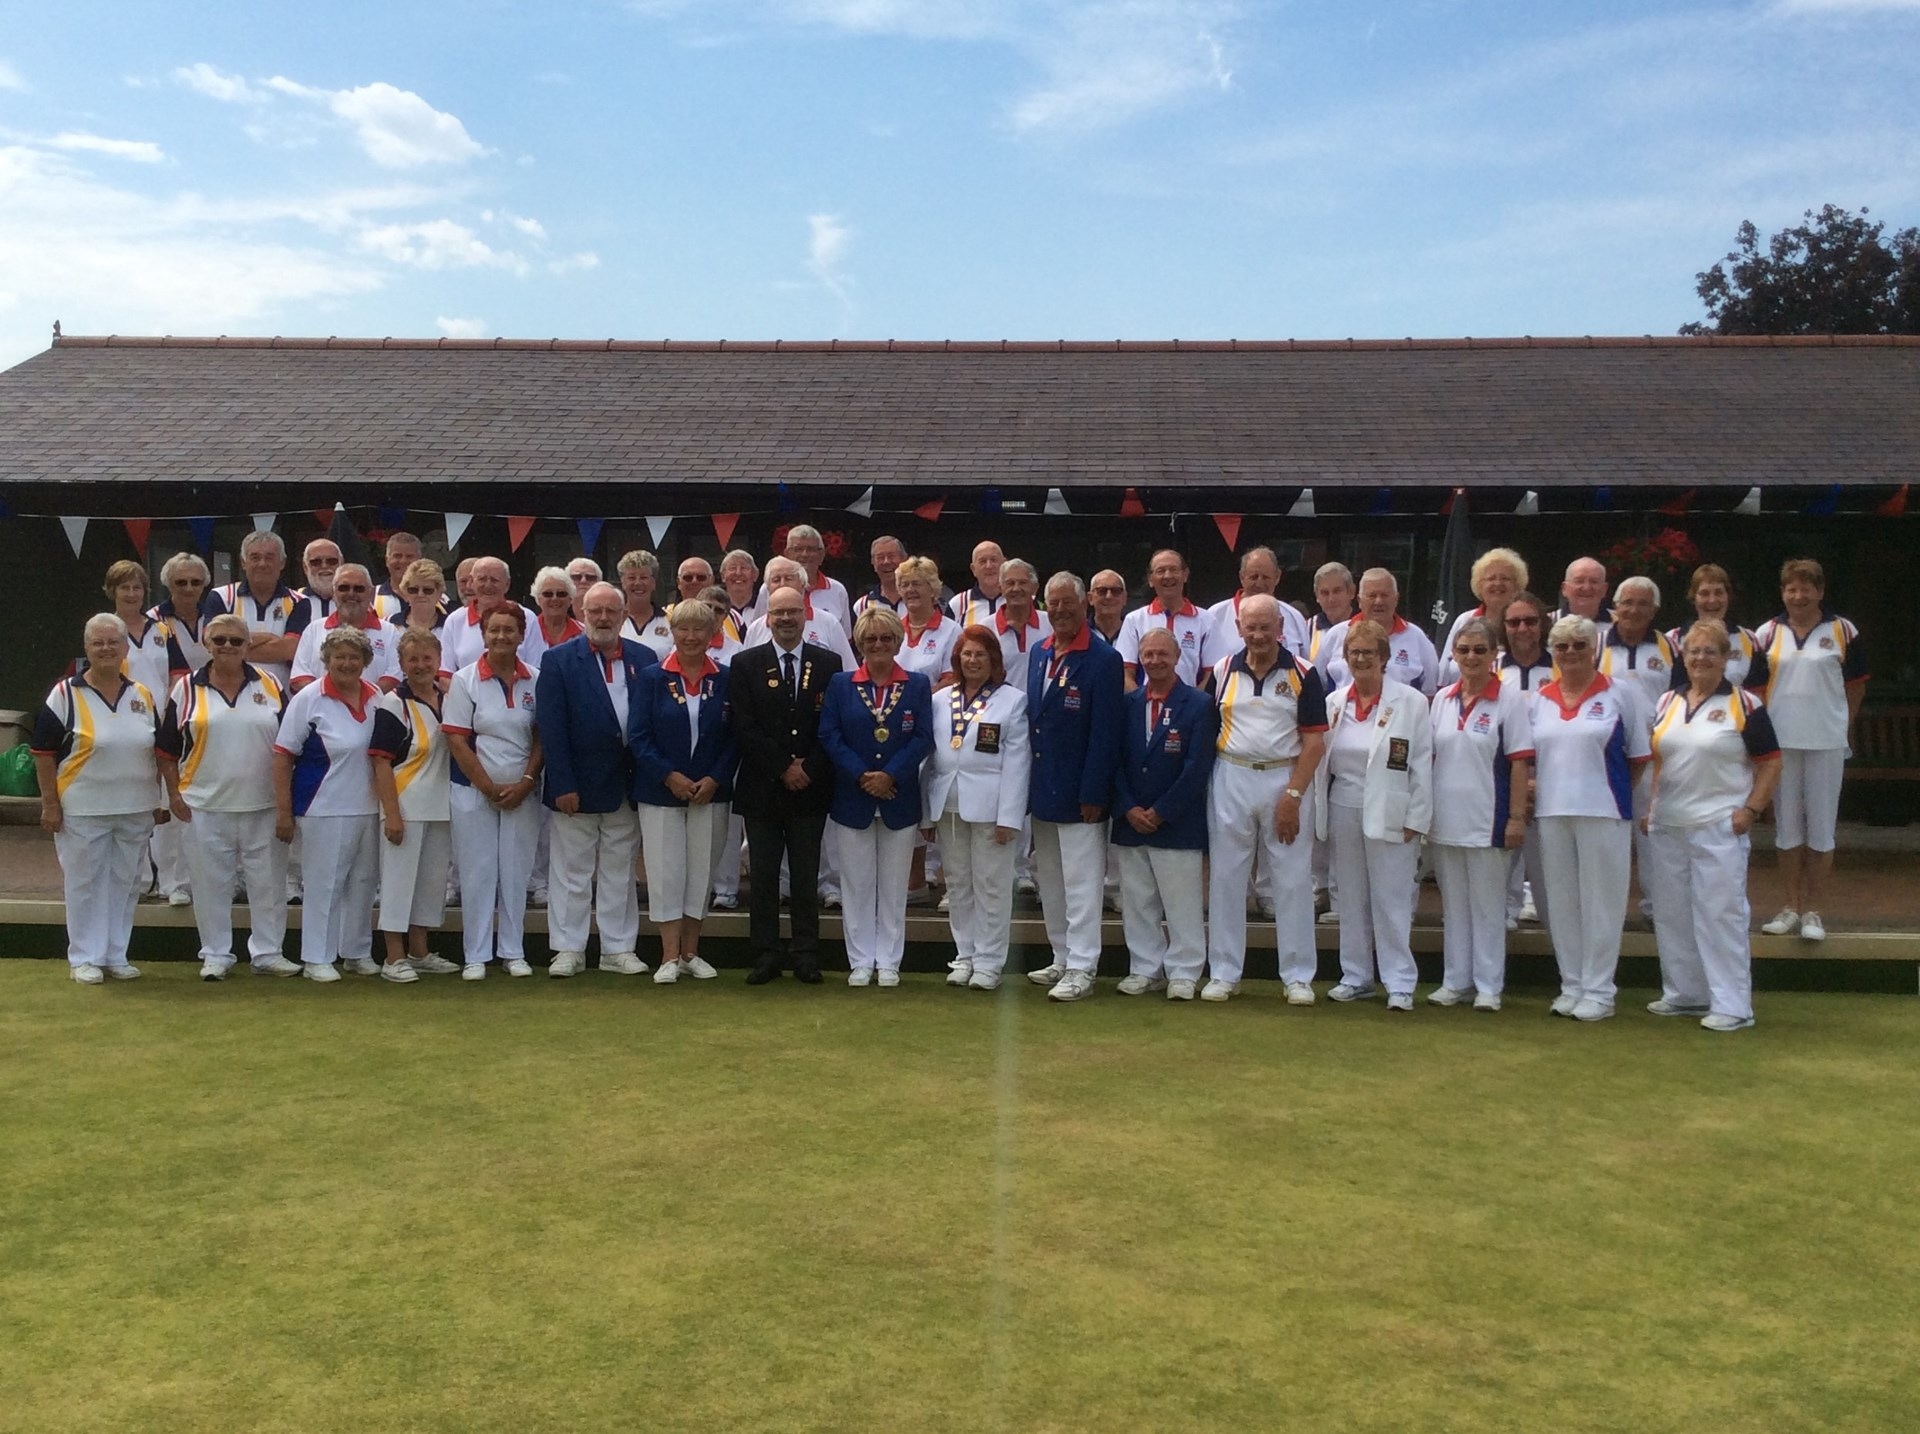 BOWLS ENGLAND visit to KHBC July 2017